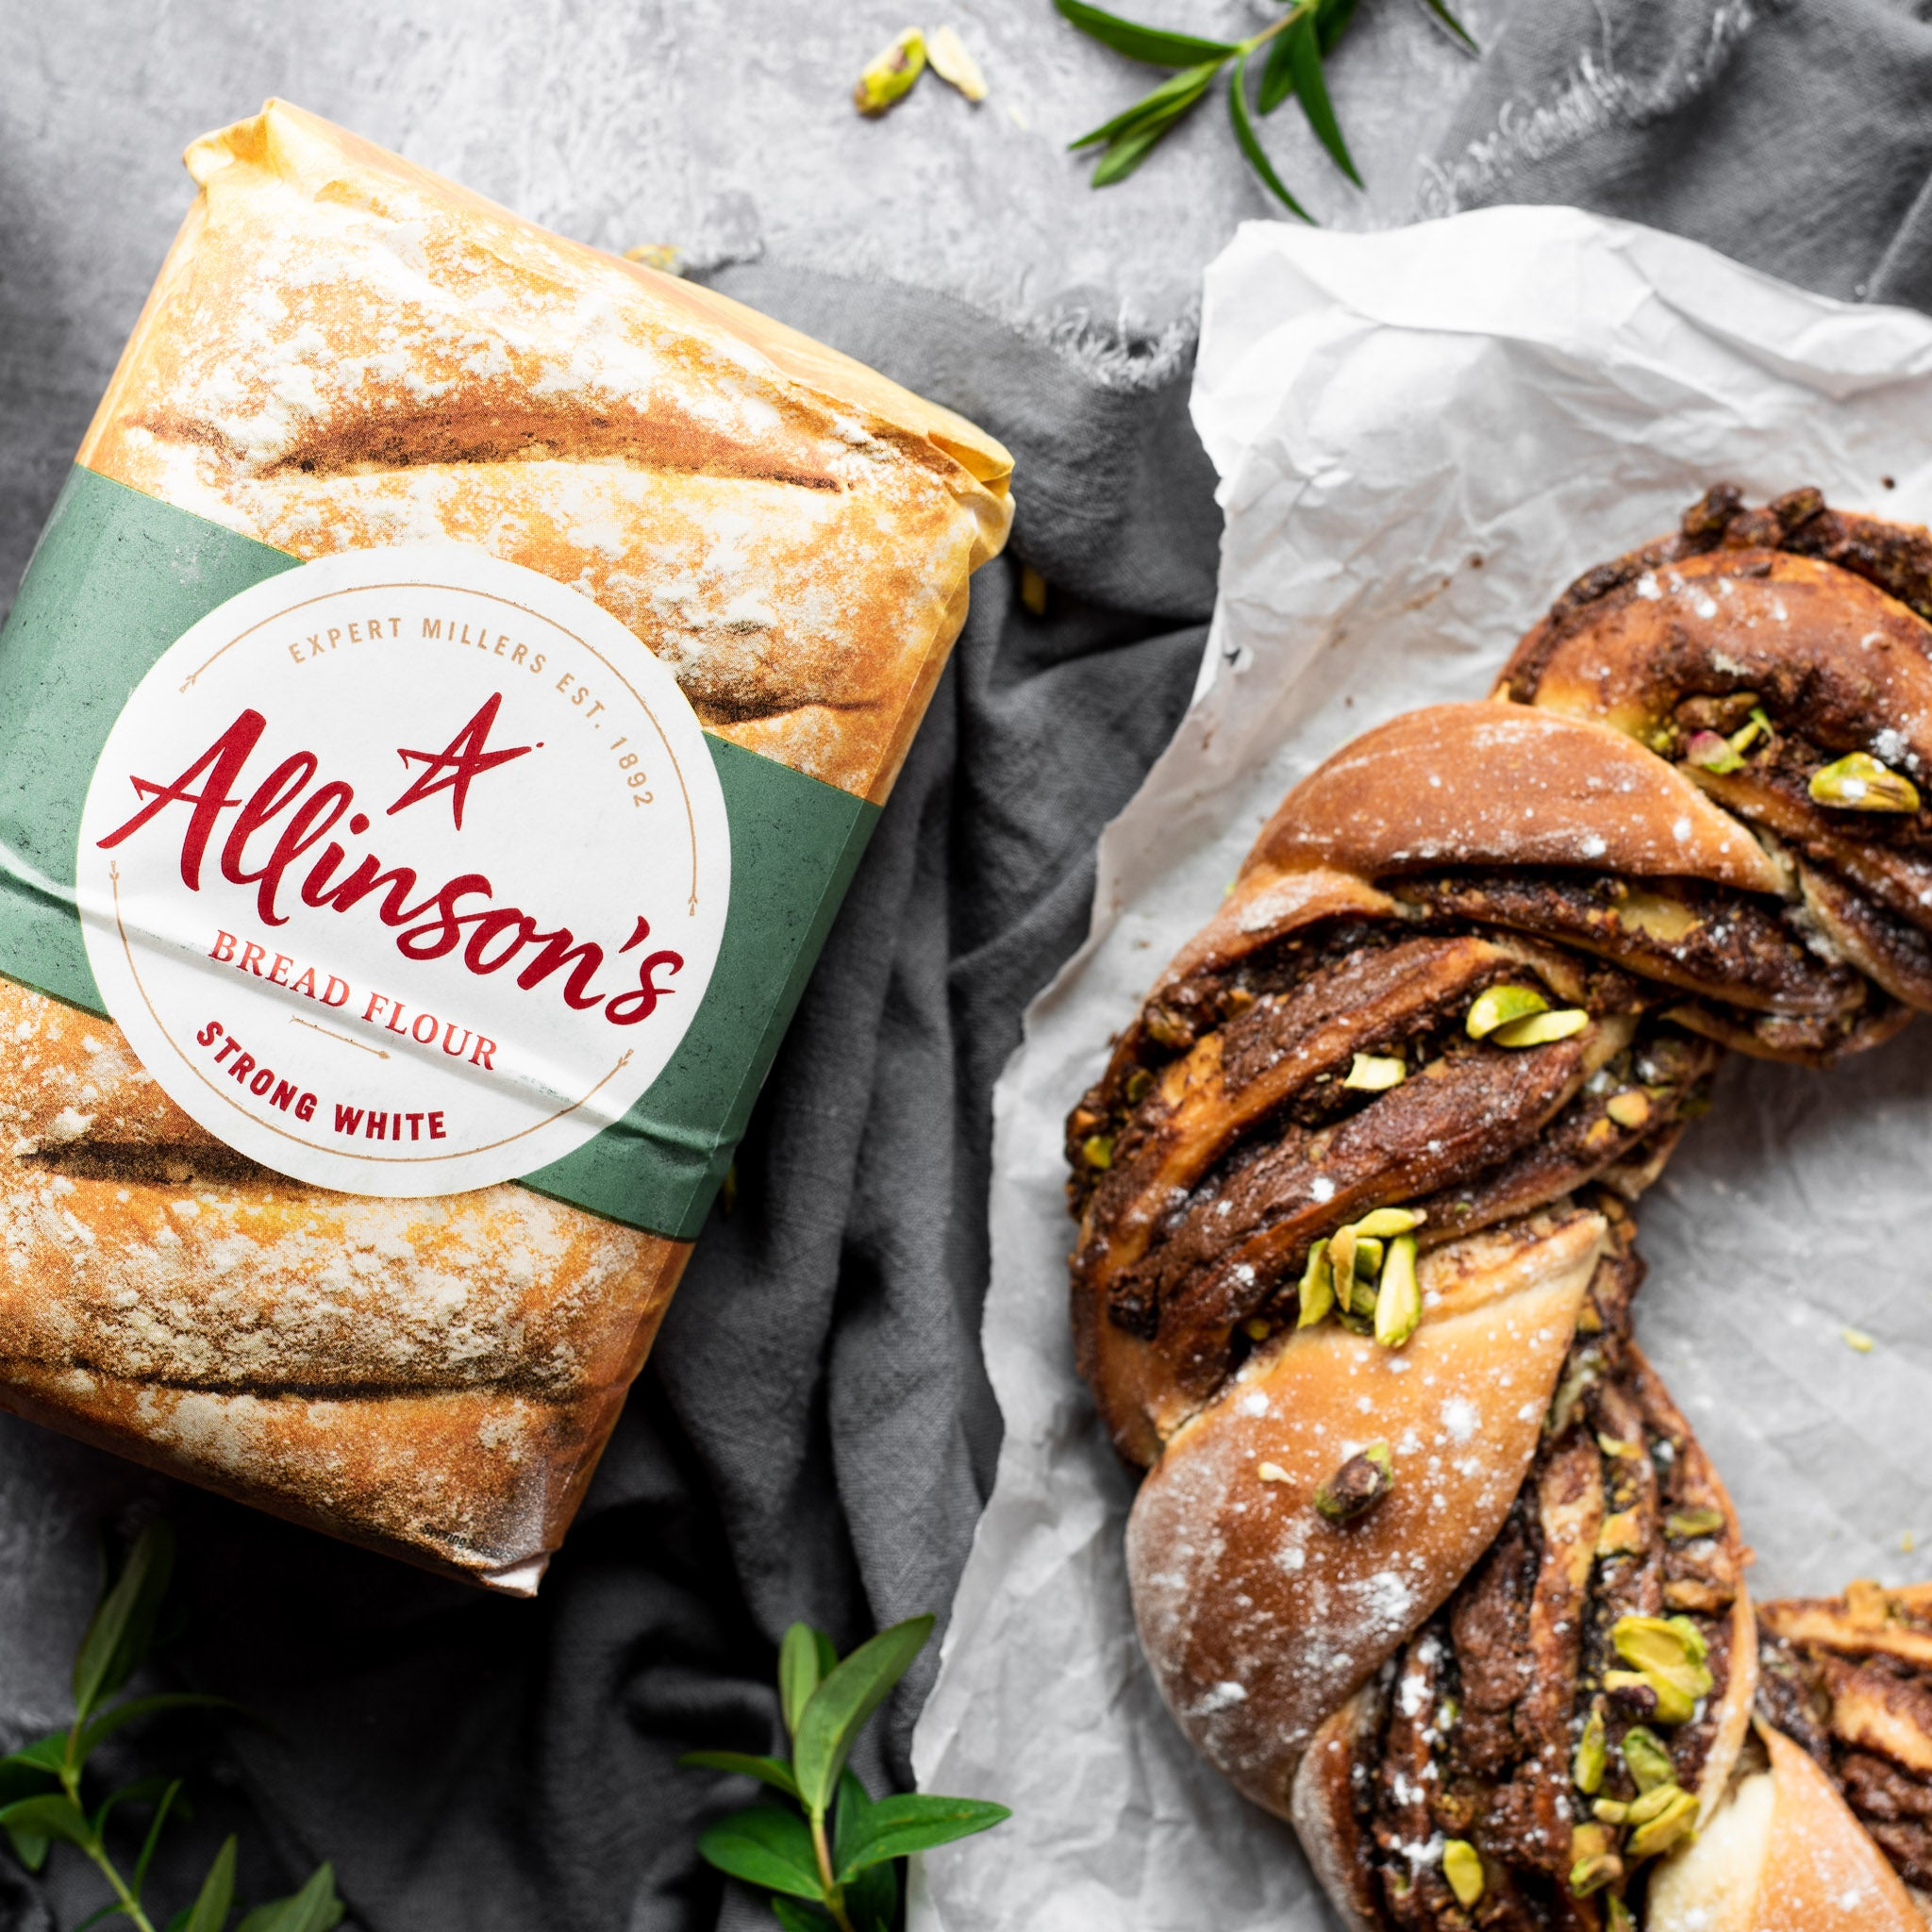 Allinsons-Chocolate-Pistachio-Wreath-1-1-Baking-Mad-3.jpg